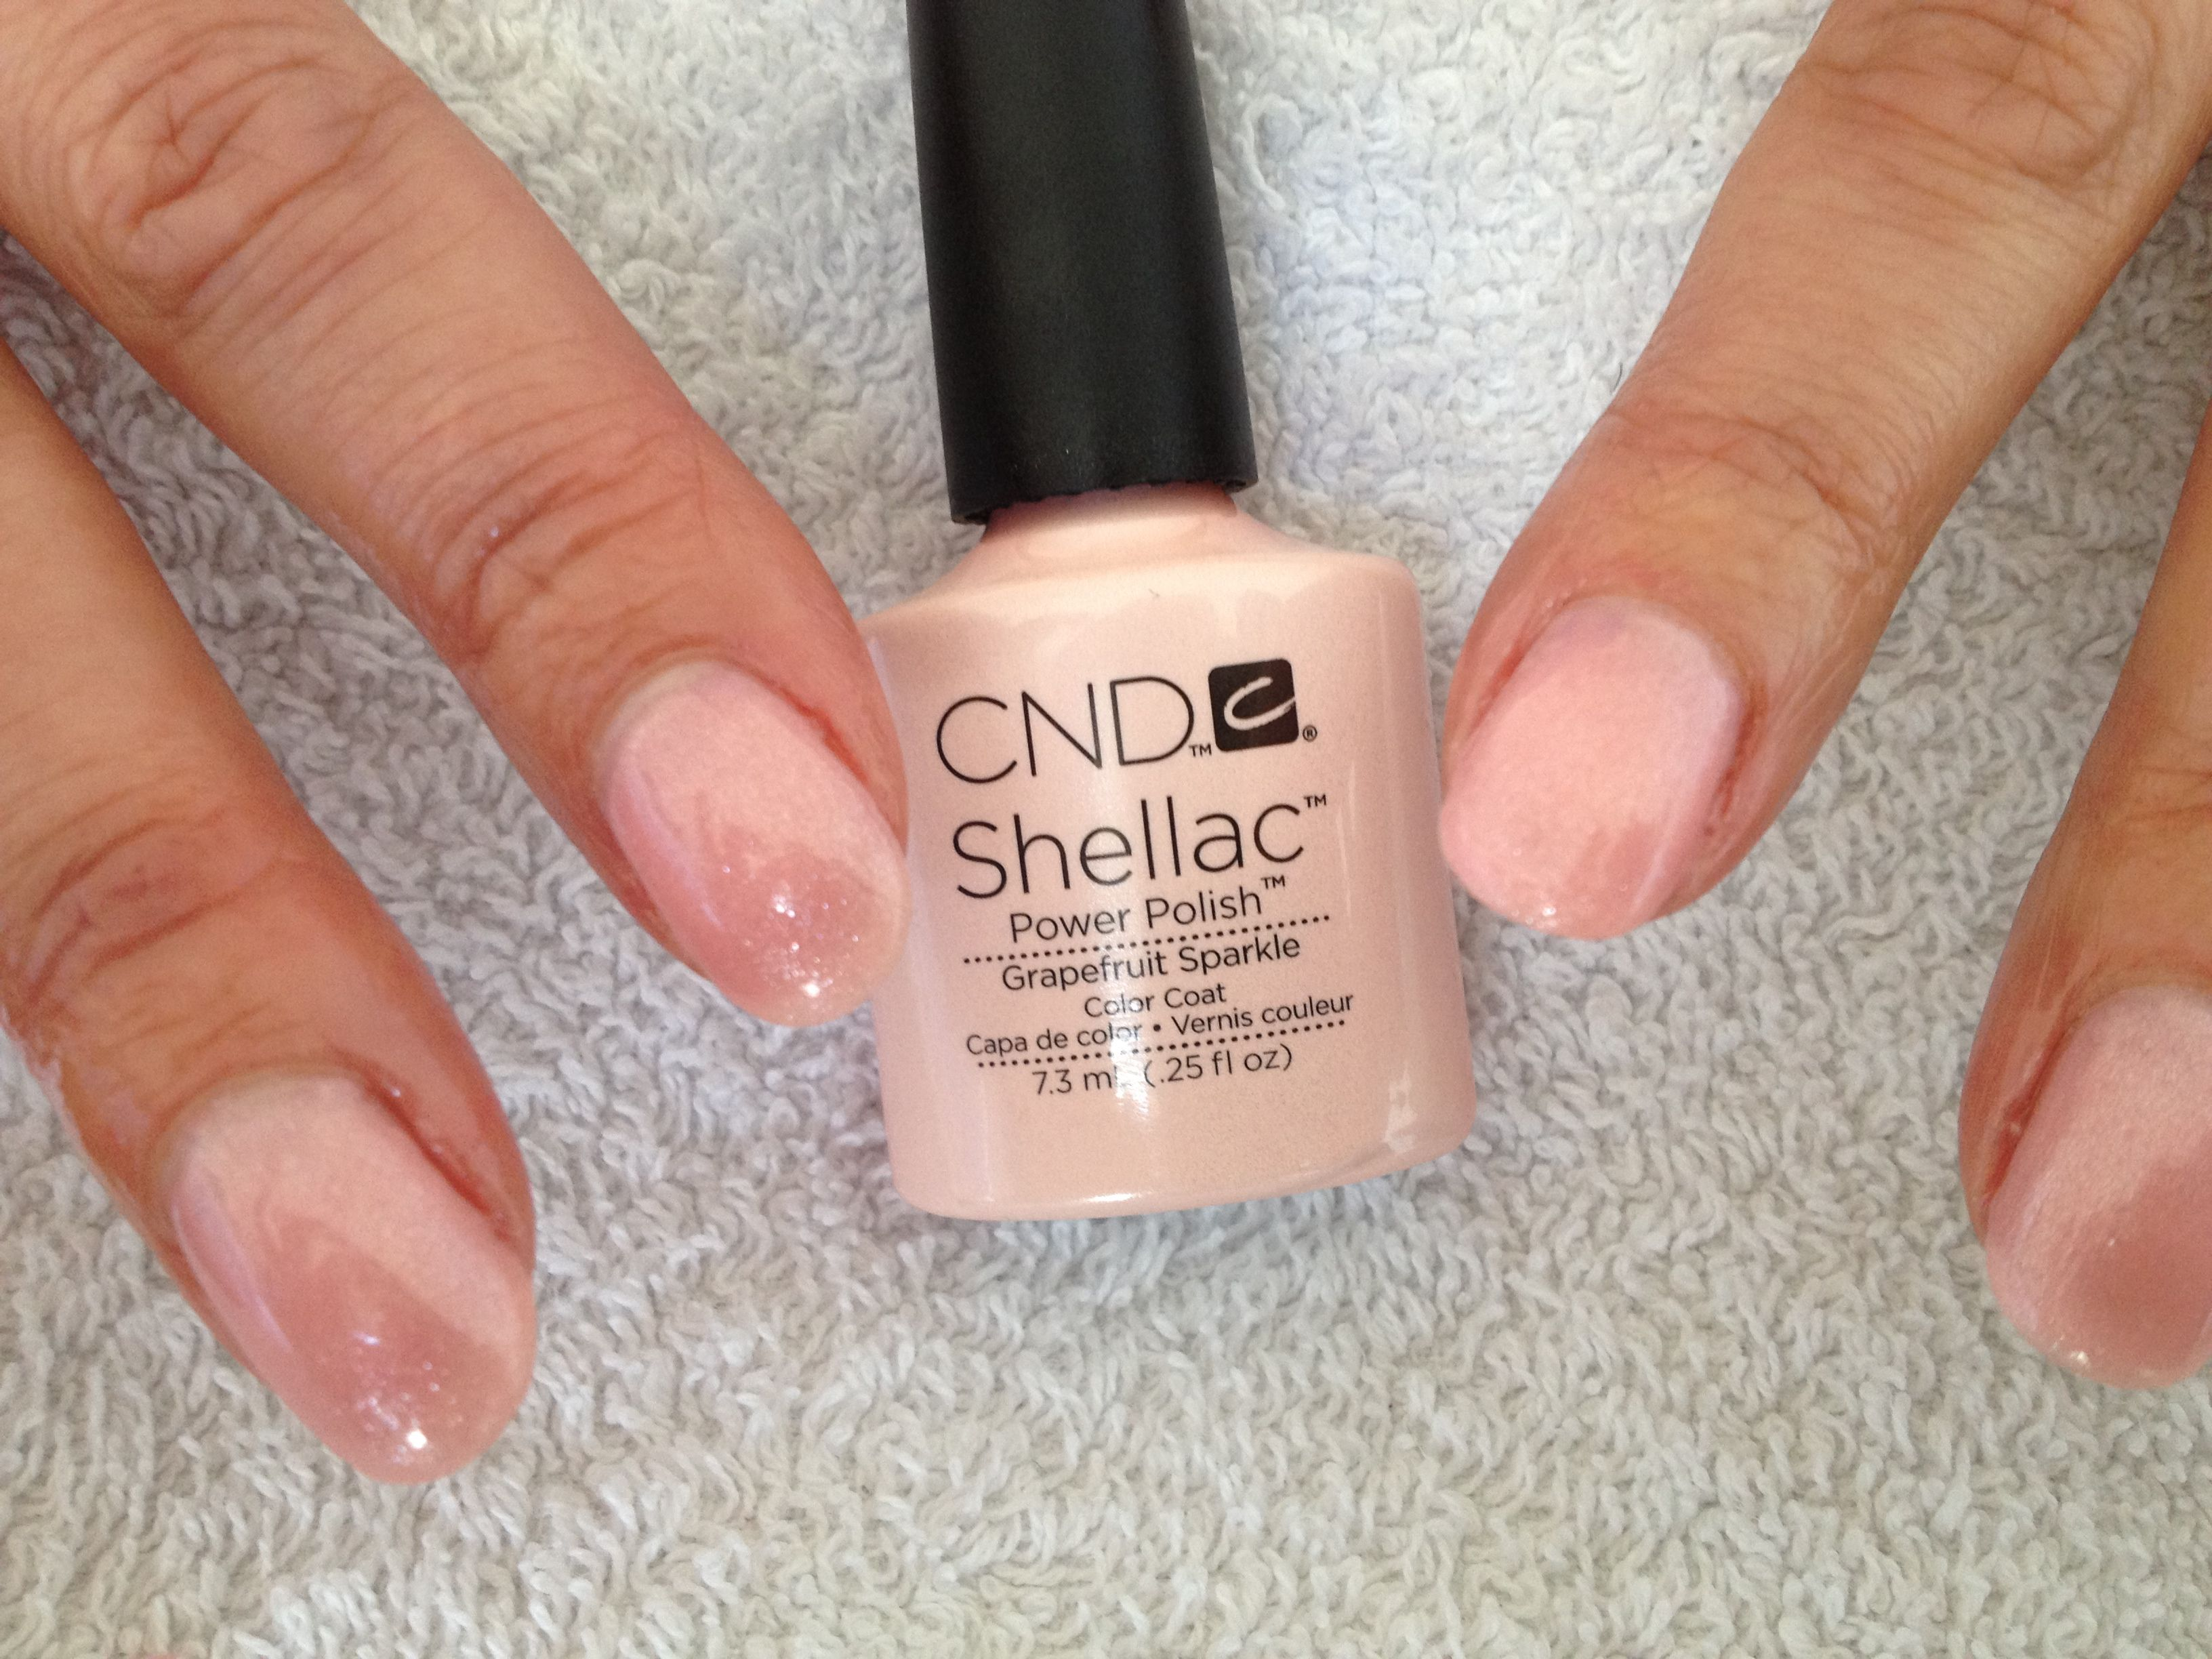 CND nude knickers | CND swatches | Pinterest | Nude